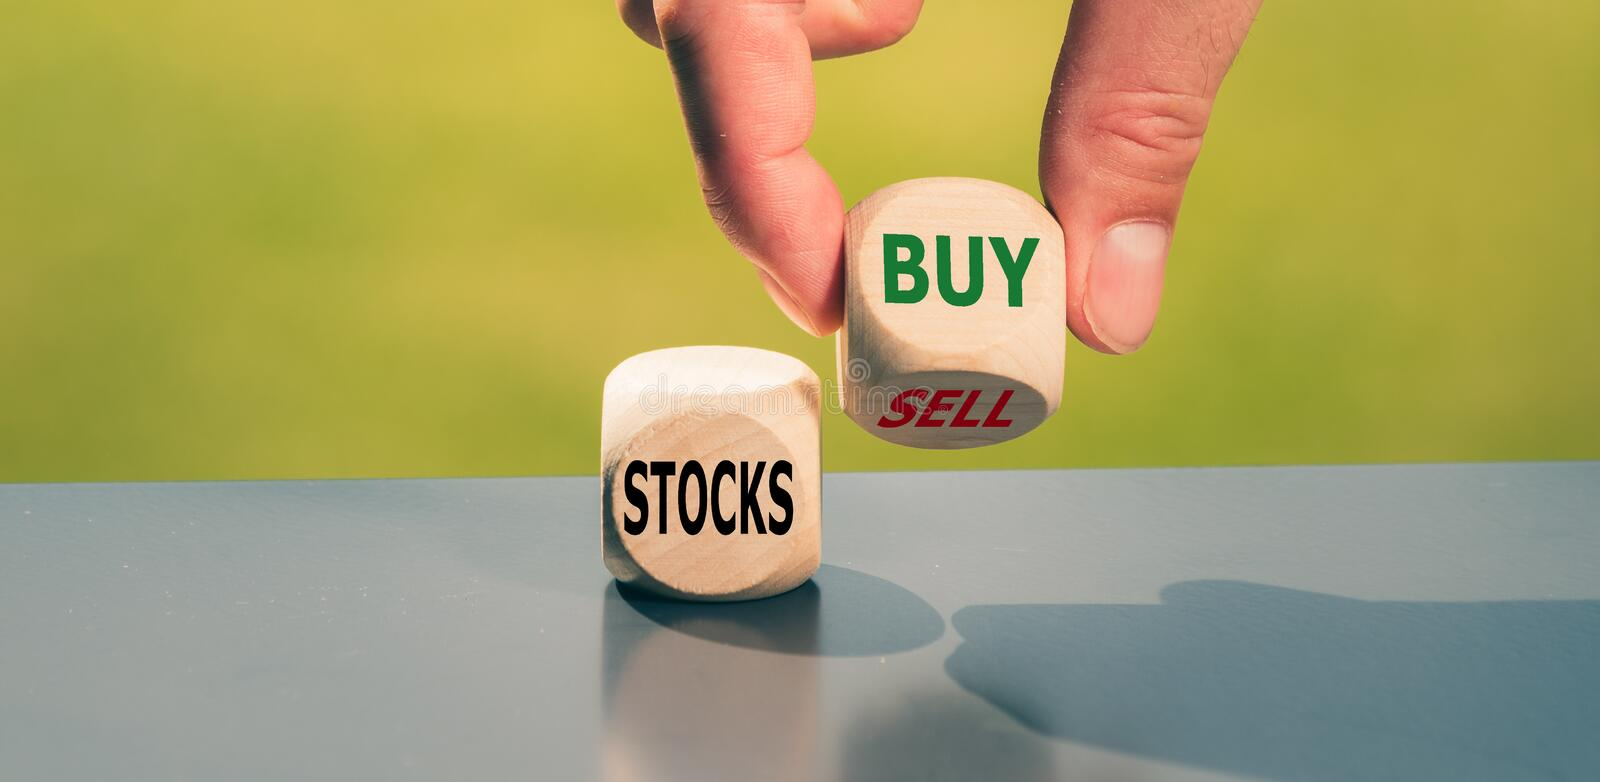 Selling or buying stocks? royalty free stock images